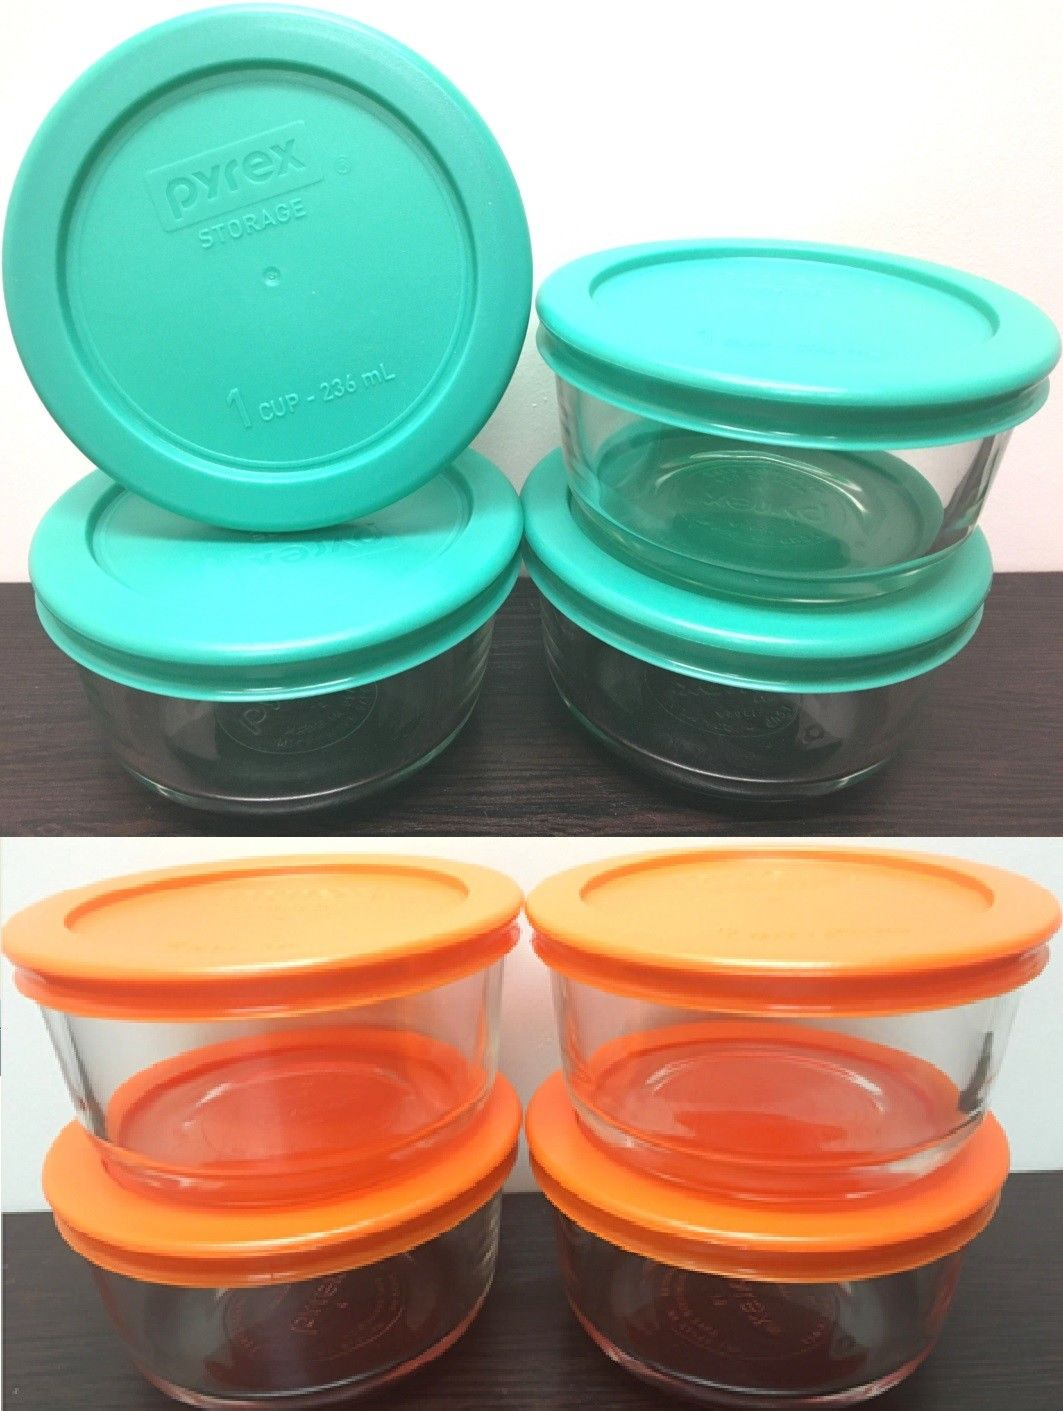 Pack of 4 Pyrex Round Glass Food Storage Container W/Lid 1,2cup ORANGE BLUE 1